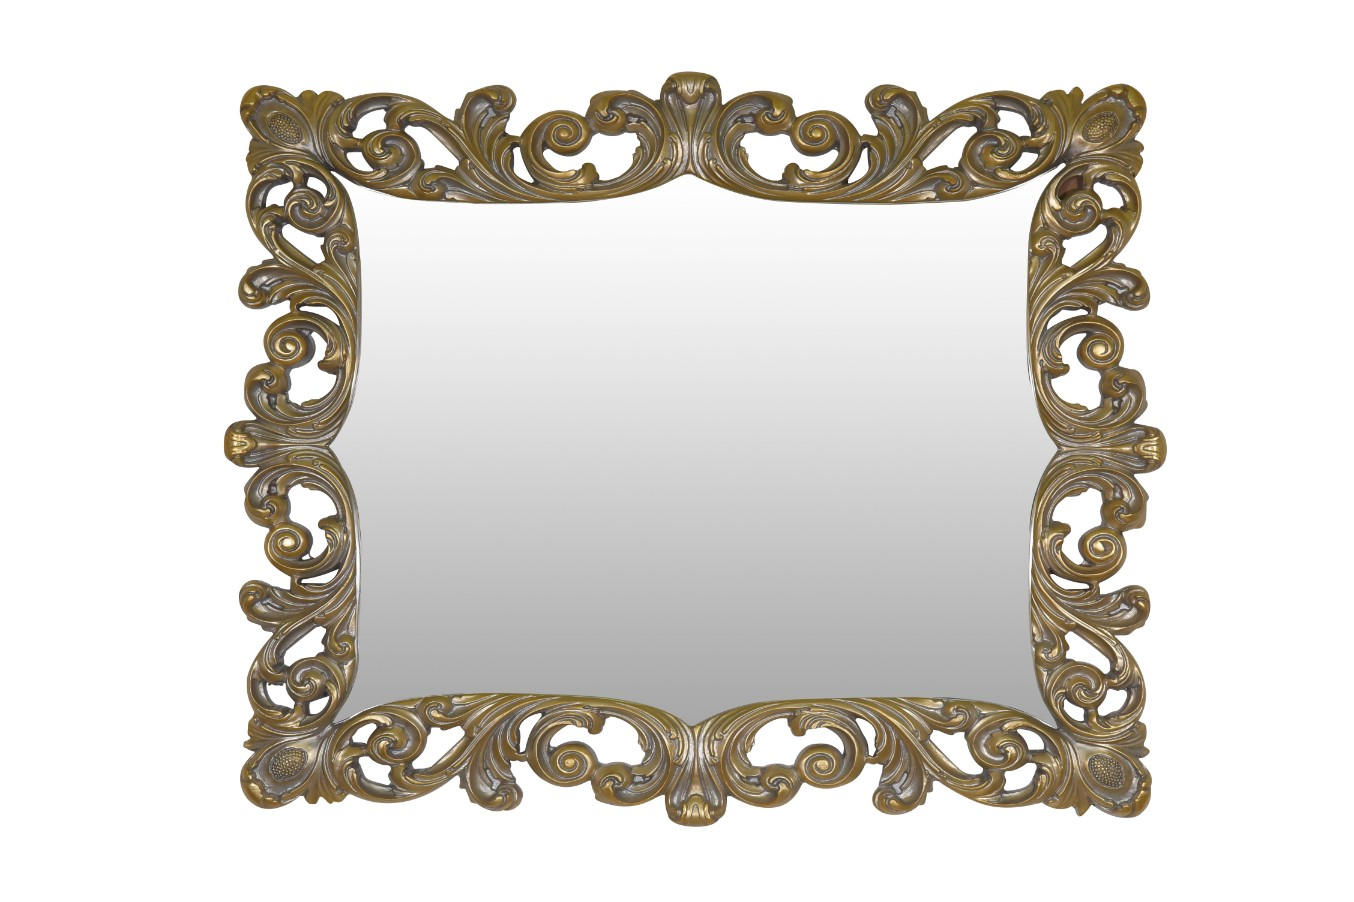 Pois de senteur, French Style , Gold Leaf , Aged Powdered Finish, Wall Mirror